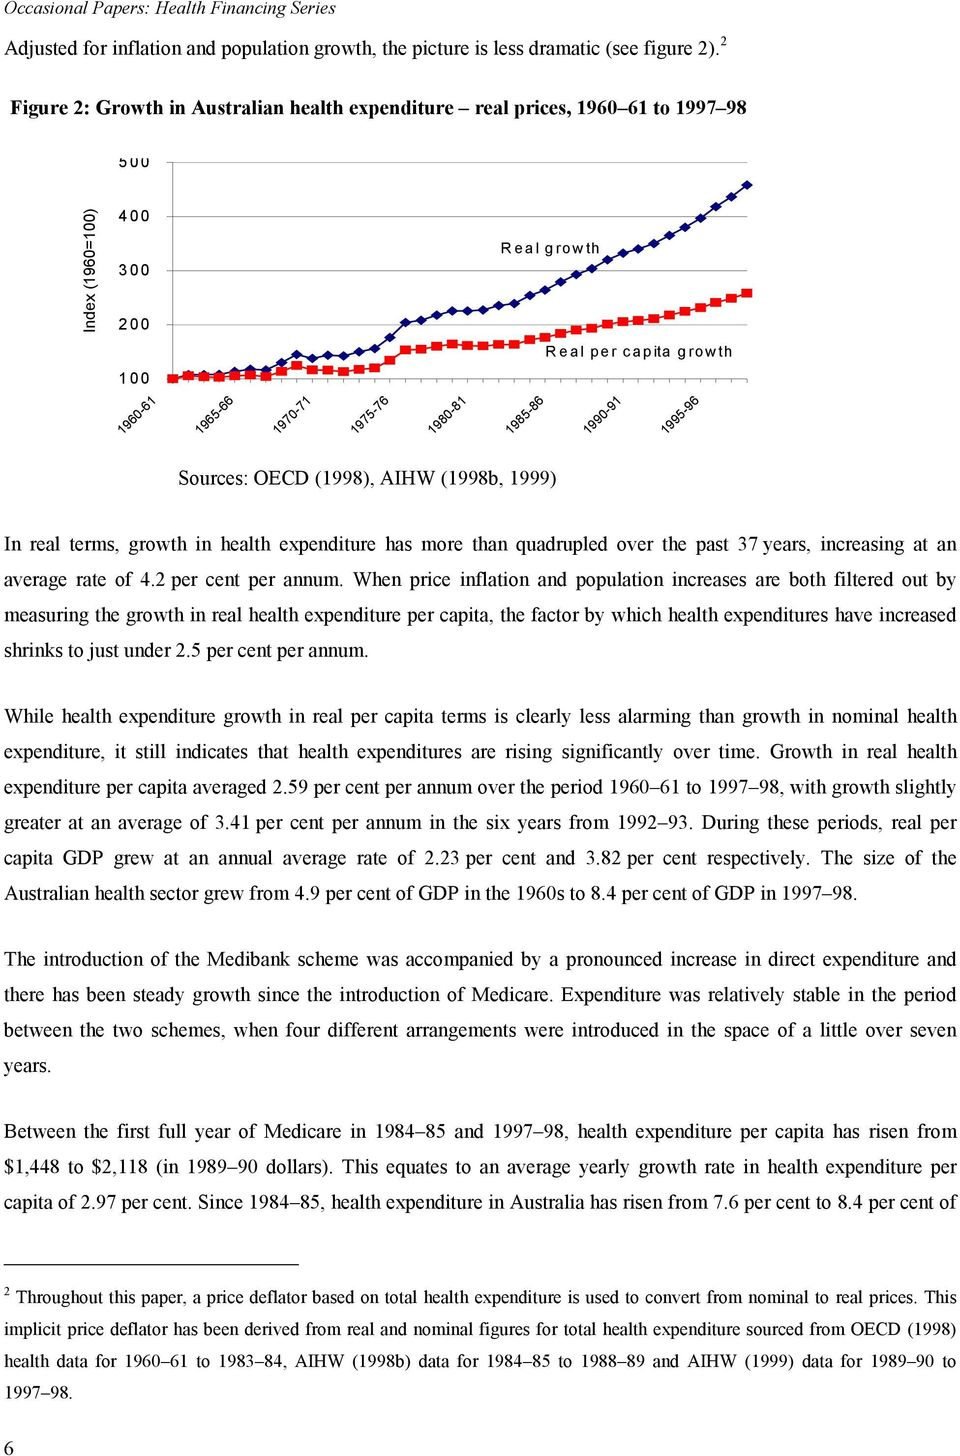 1985-86 1990-91 1995-96 Sources: OECD (1998), AIHW (1998b, 1999) In real terms, growth in health expenditure has more than quadrupled over the past 37 years, increasing at an average rate of 4.